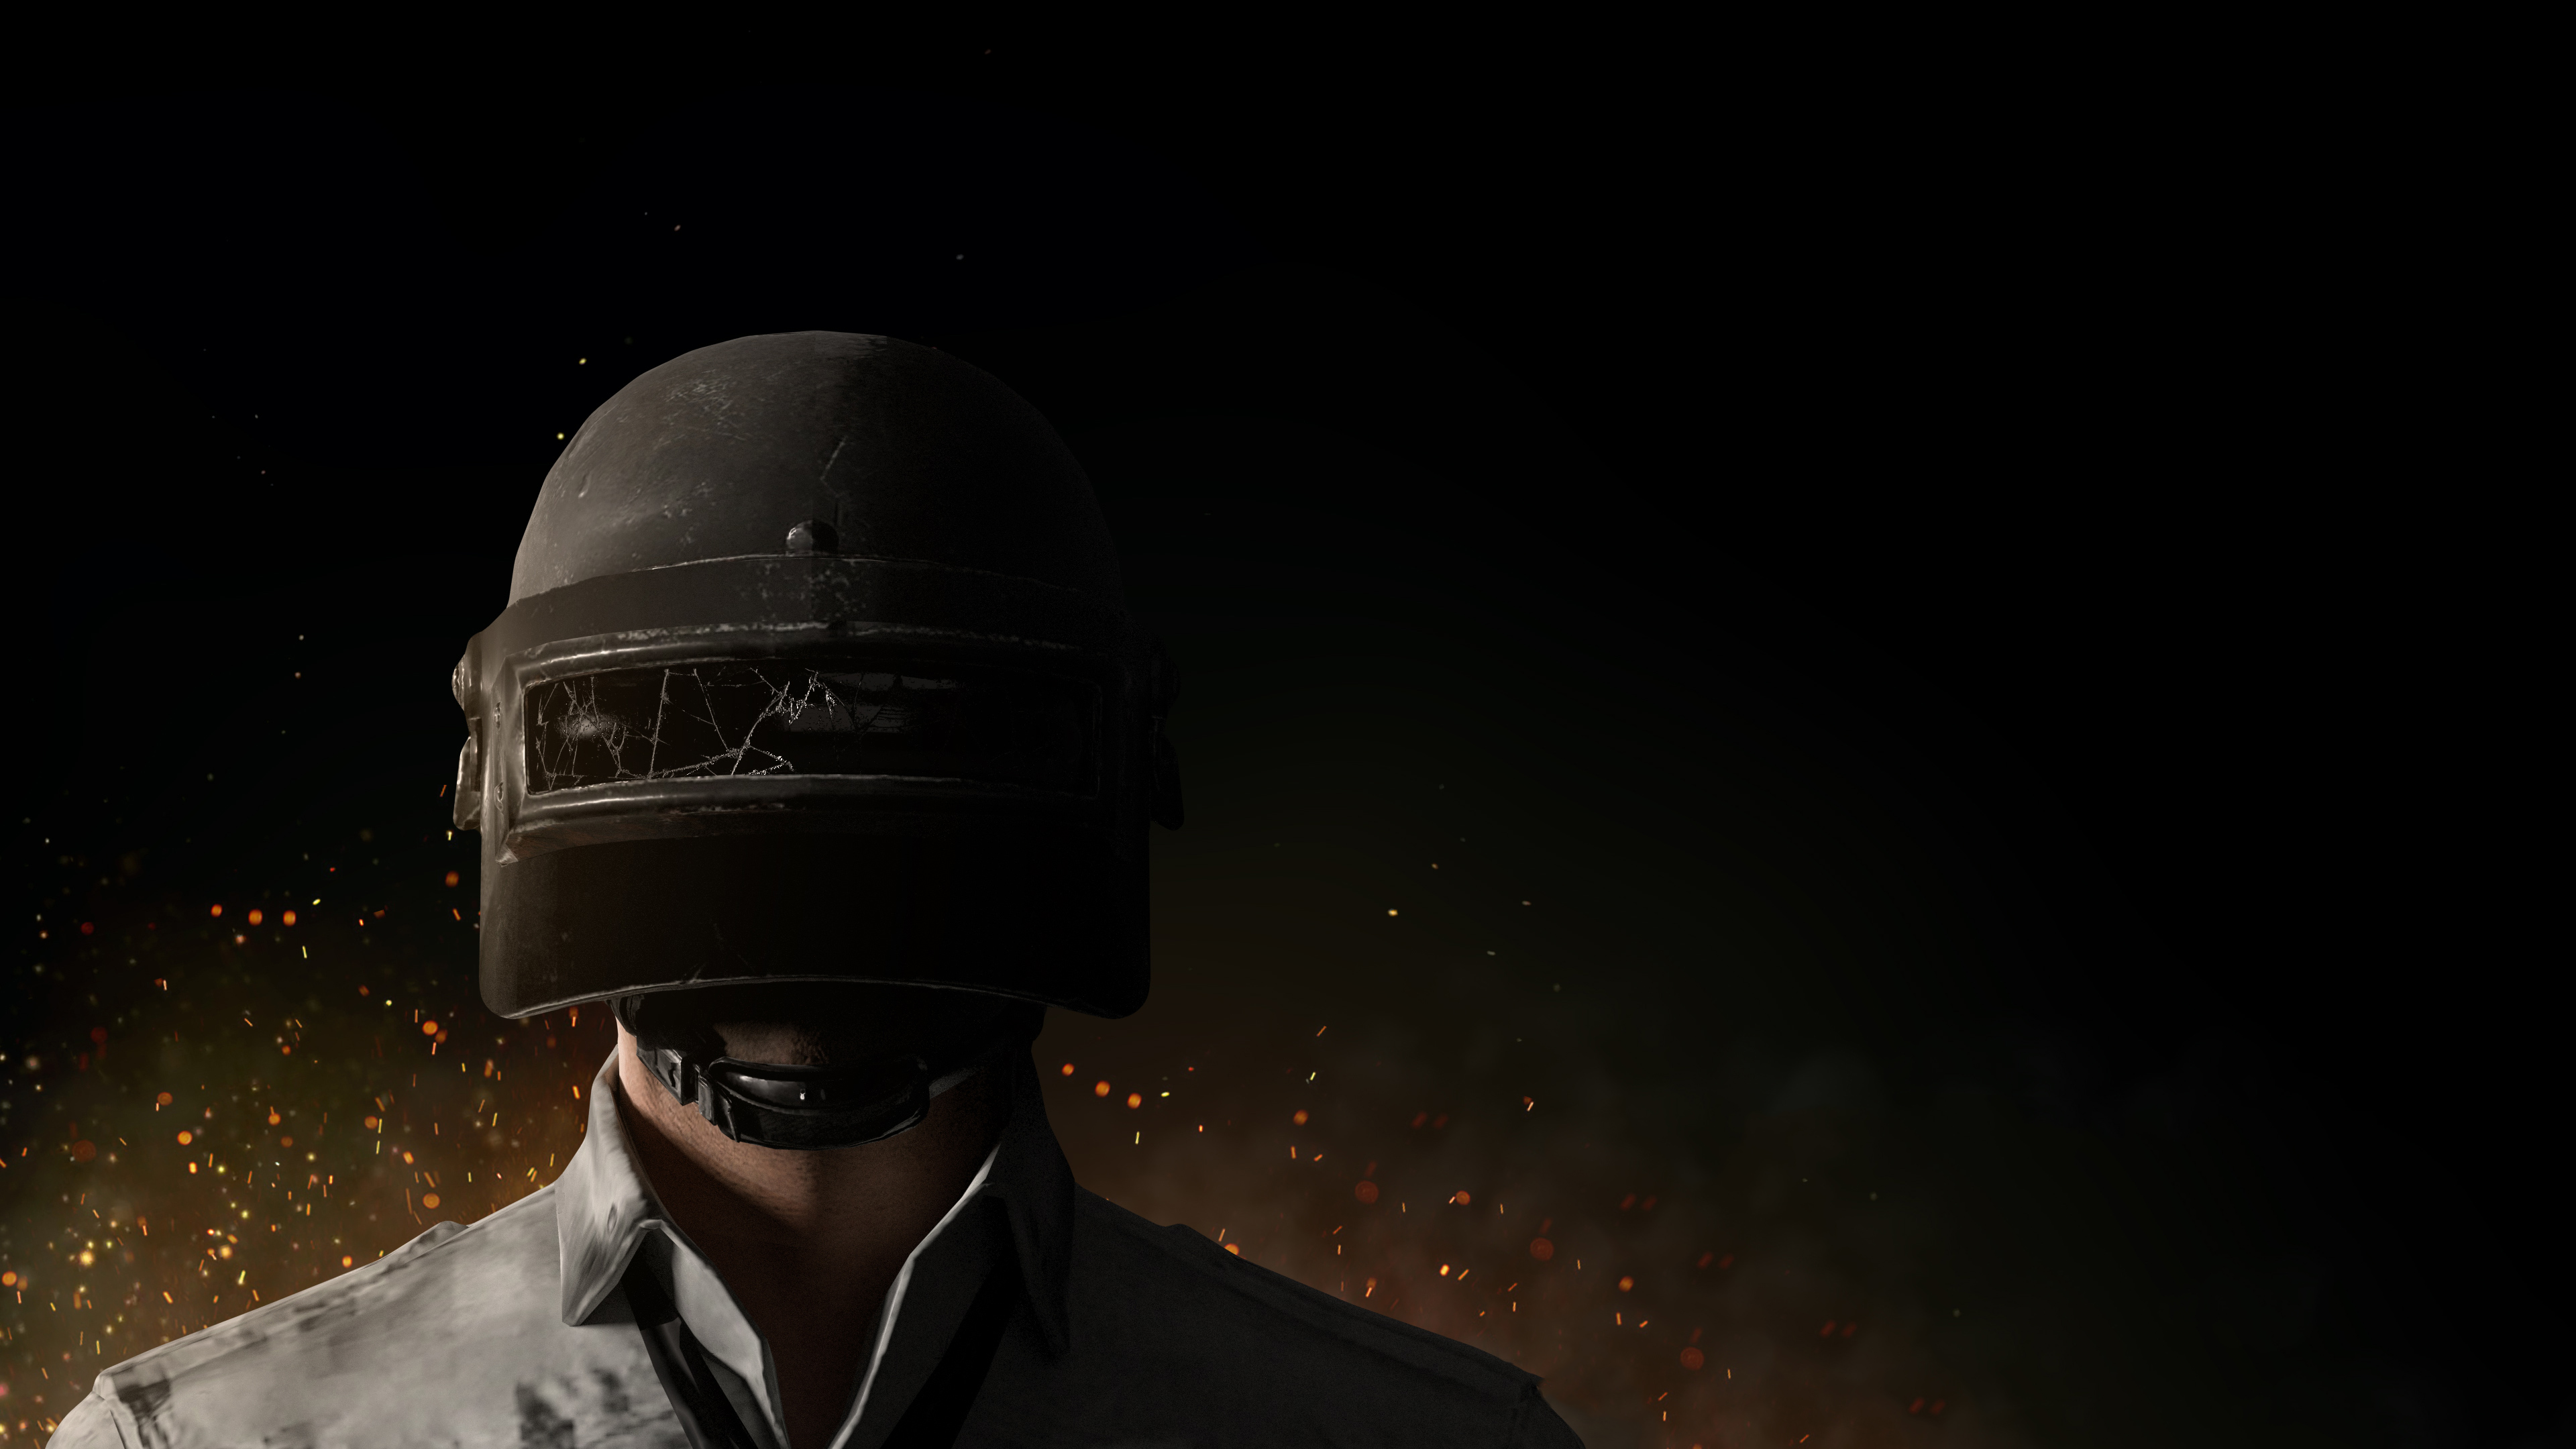 Pubg Helmet Guy 4k Hd Games 4k Wallpapers Images Backgrounds